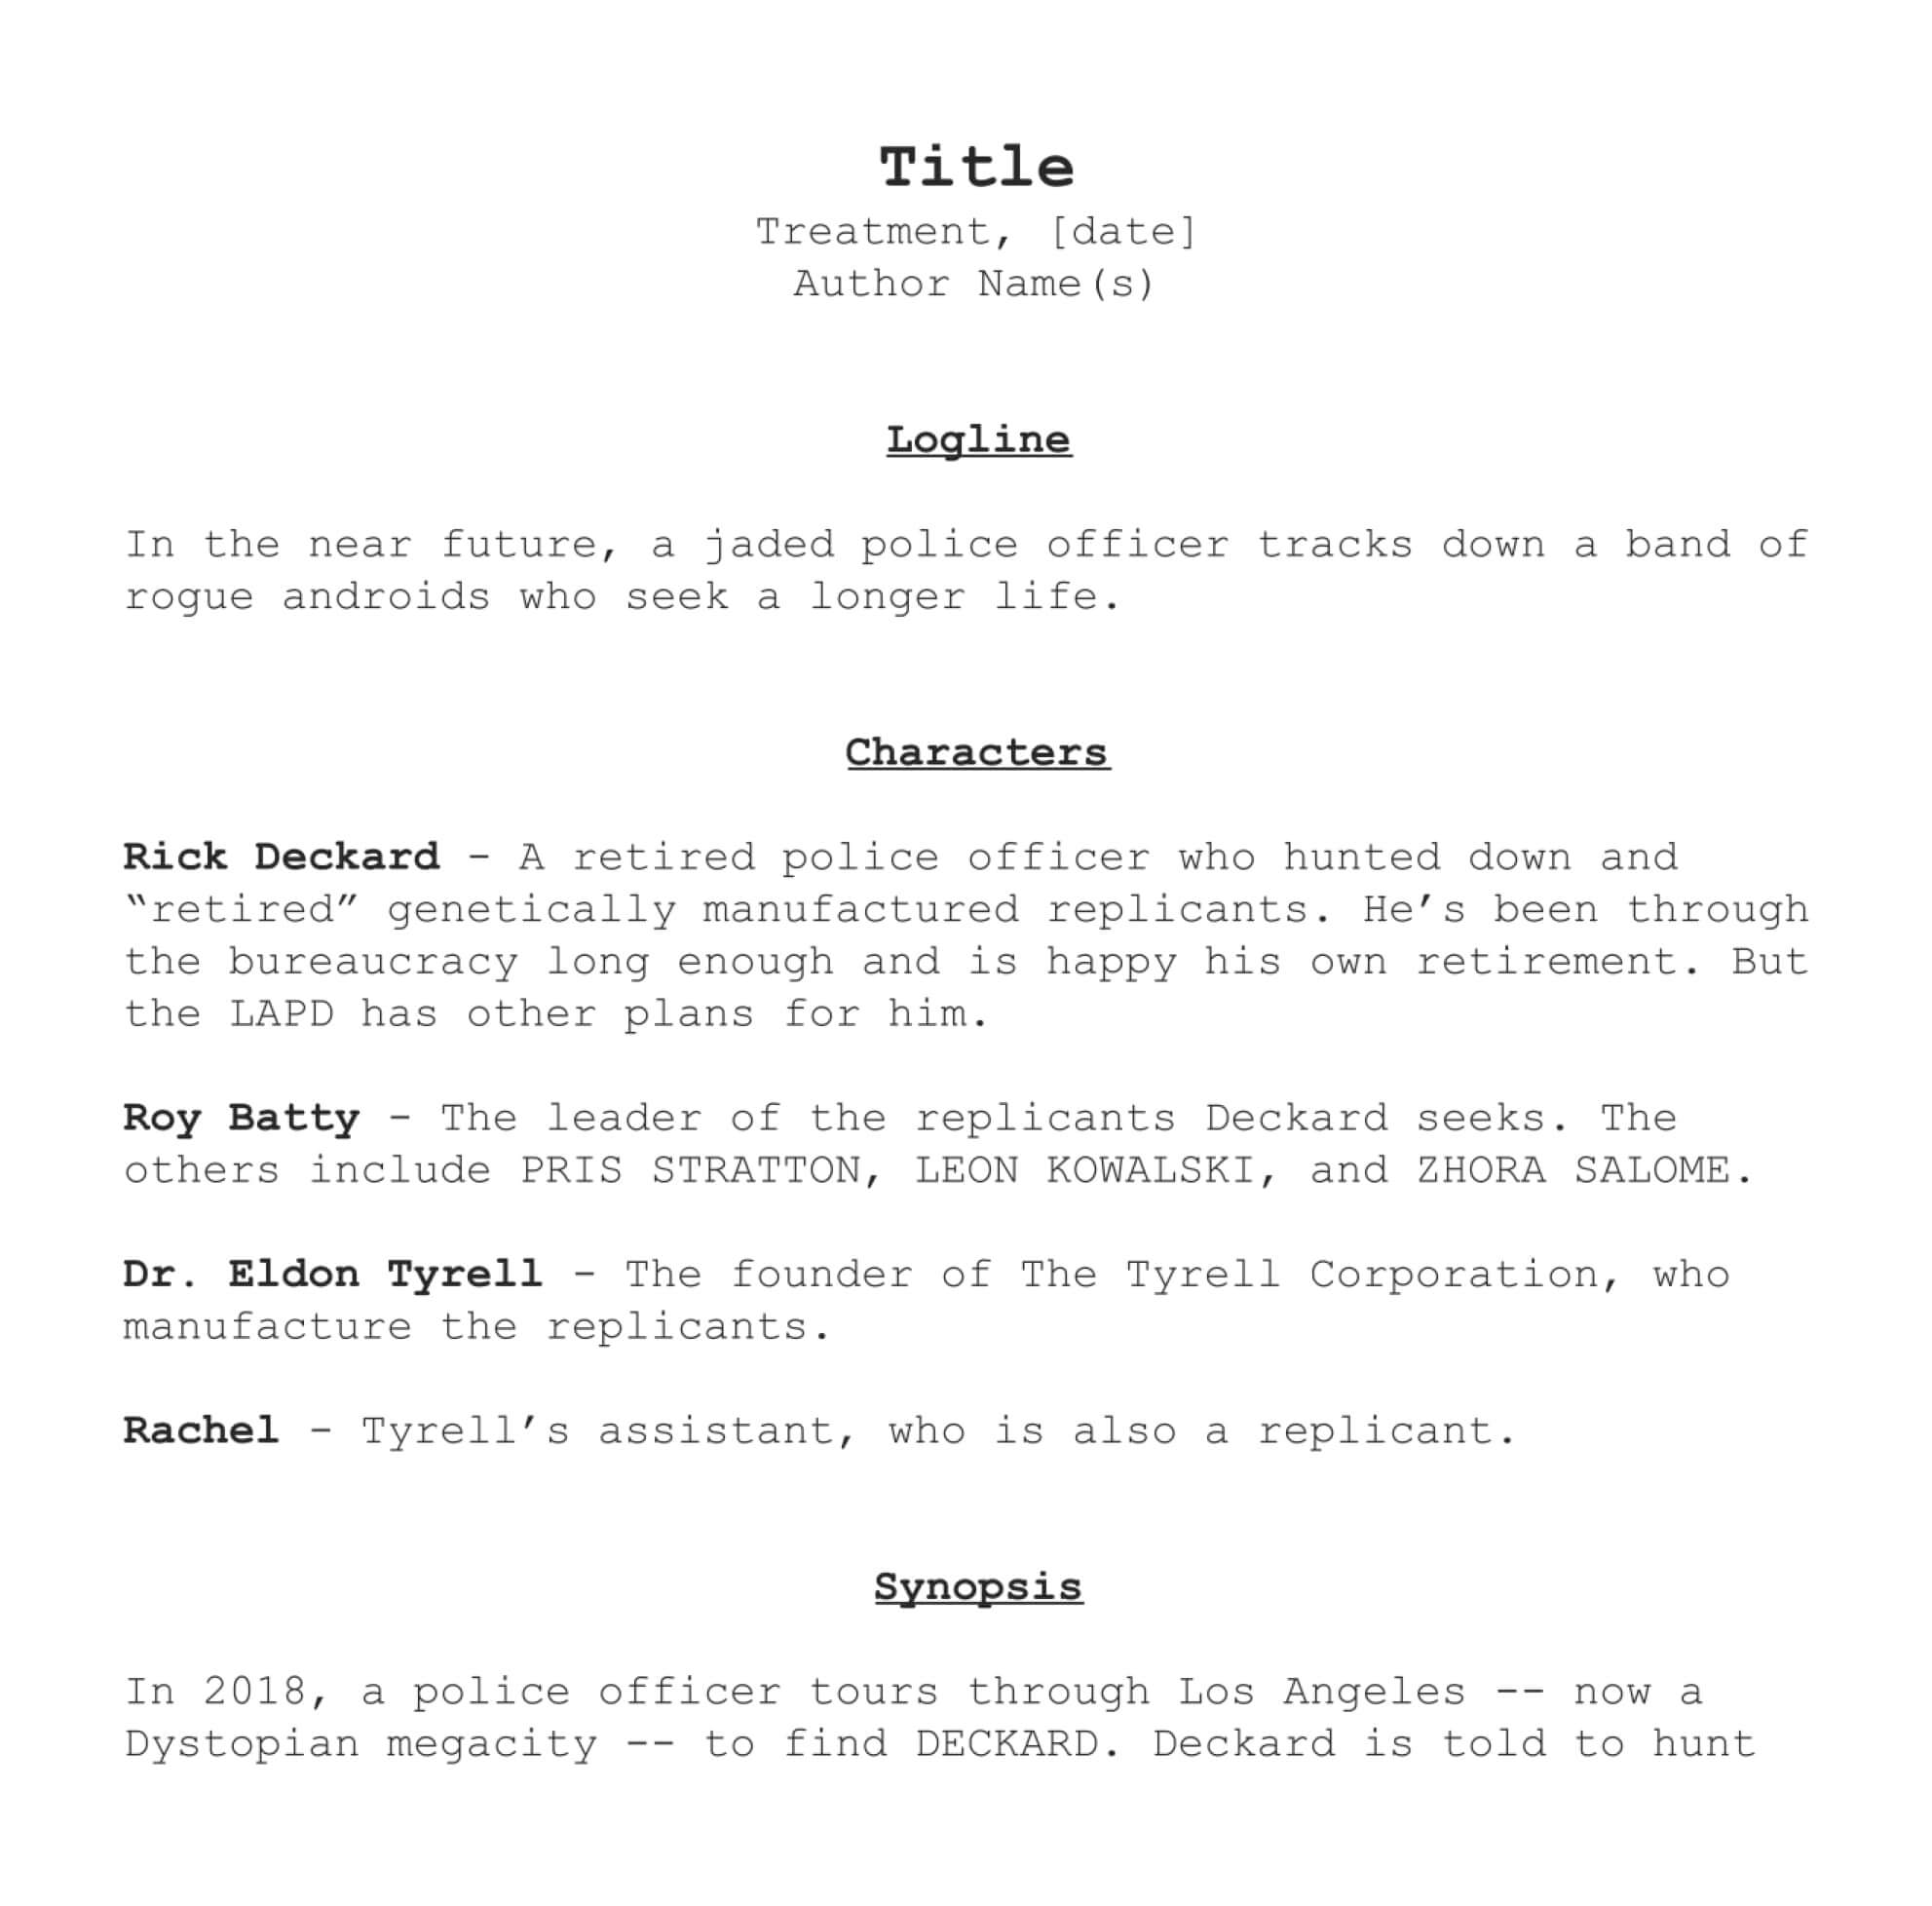 How To Write A Film Treatment Like The Pros Free Template Able